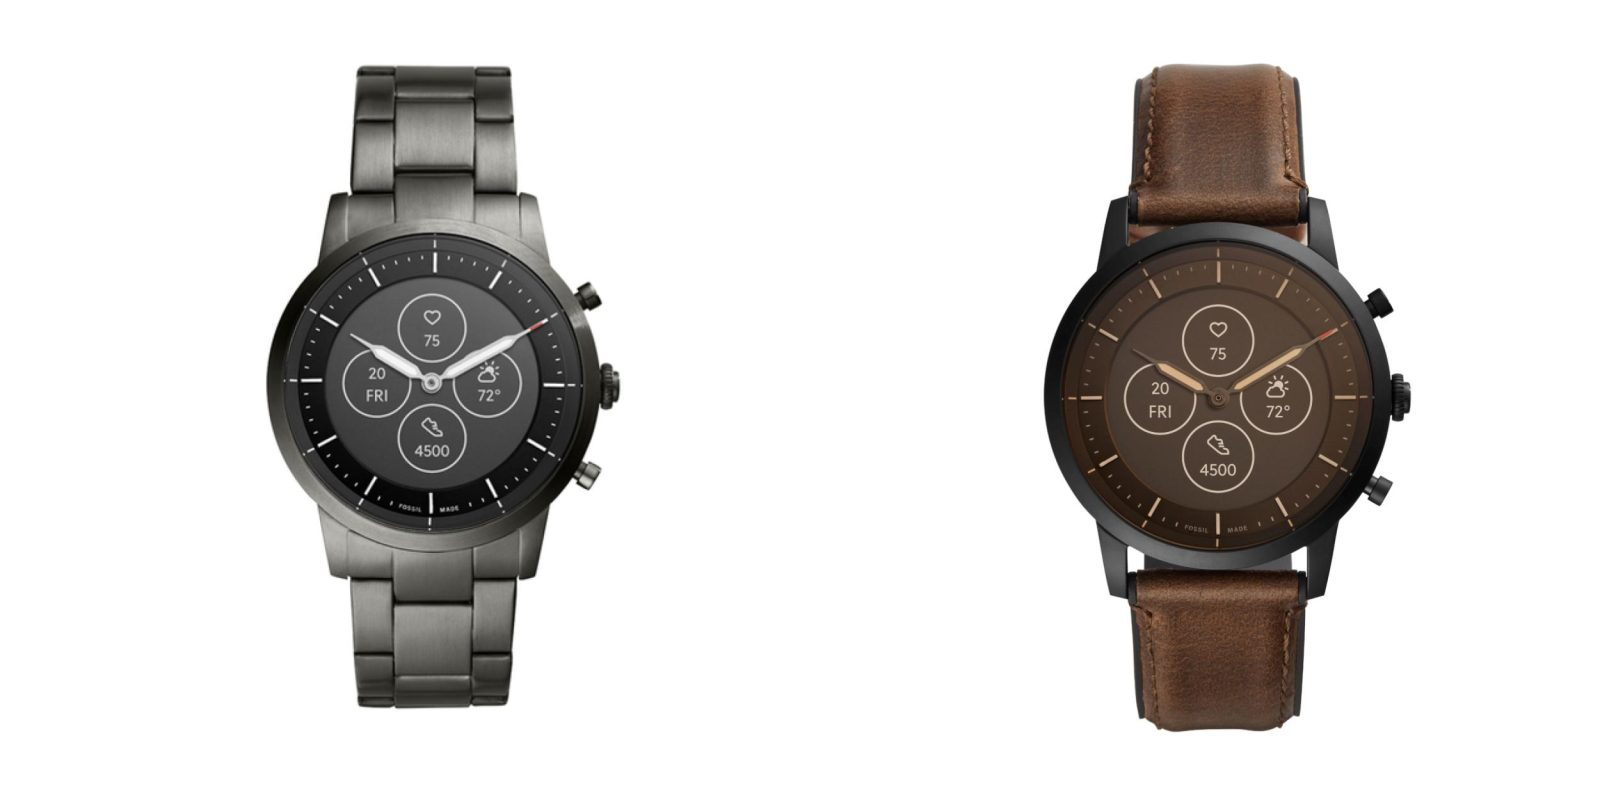 Fossil hybrid smartwatch with analog hands & E-Ink display emerges, possibly running Wear OS